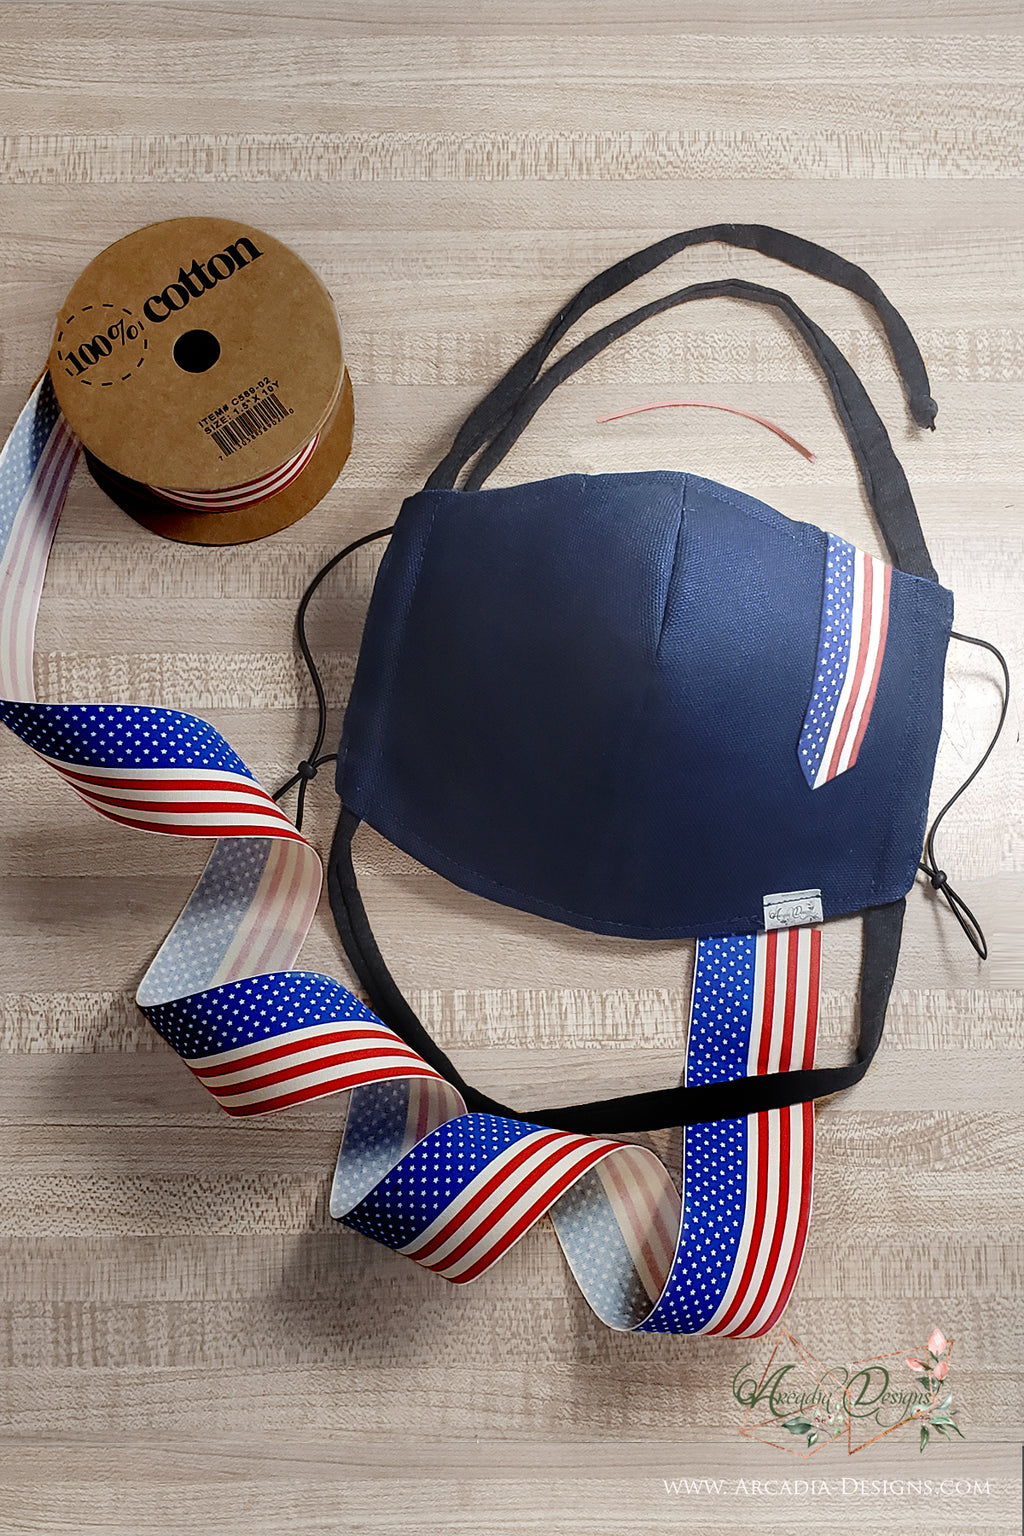 Patriotic Face Mask with American flag 100% Cotton Ribbon Face cover for July 4th Arcadia Designs